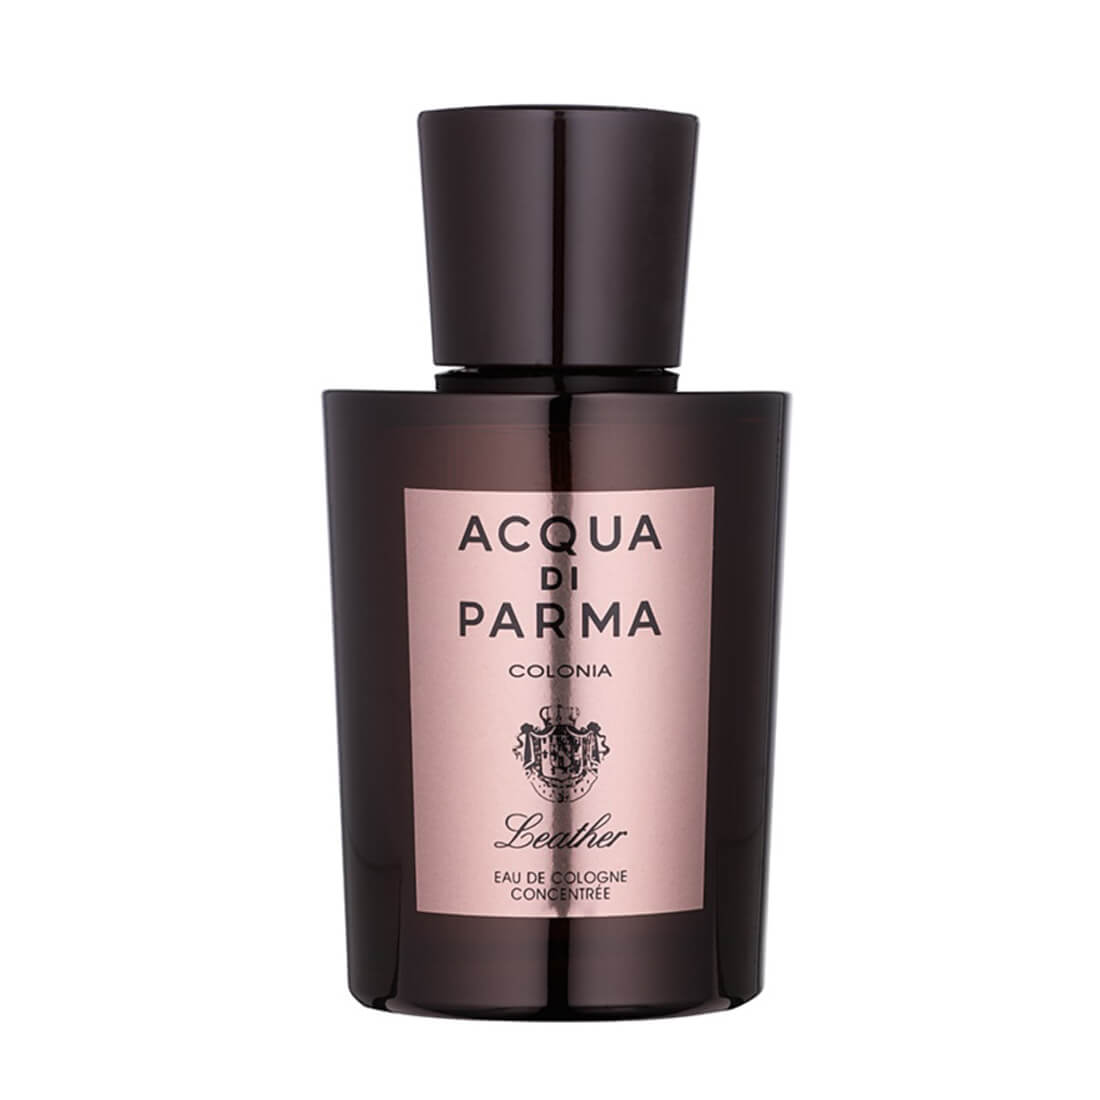 Acqua Di Parma Colonia Leather Eau De Cologne Perfume For Unisex - 100ml